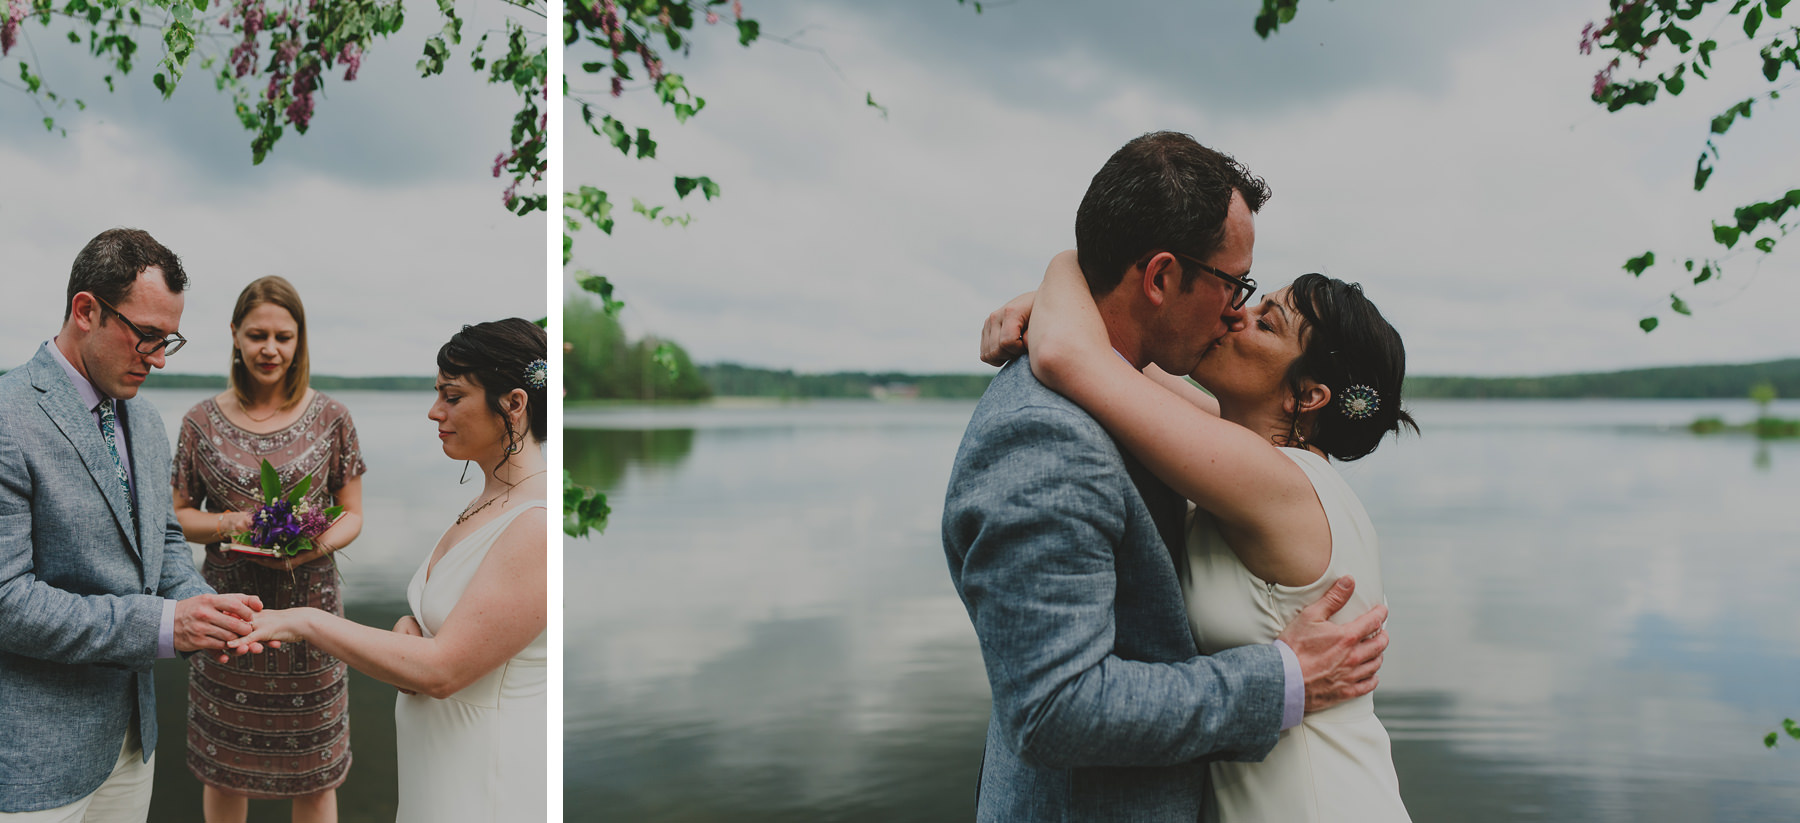 Finland Elopement Photographer 0041